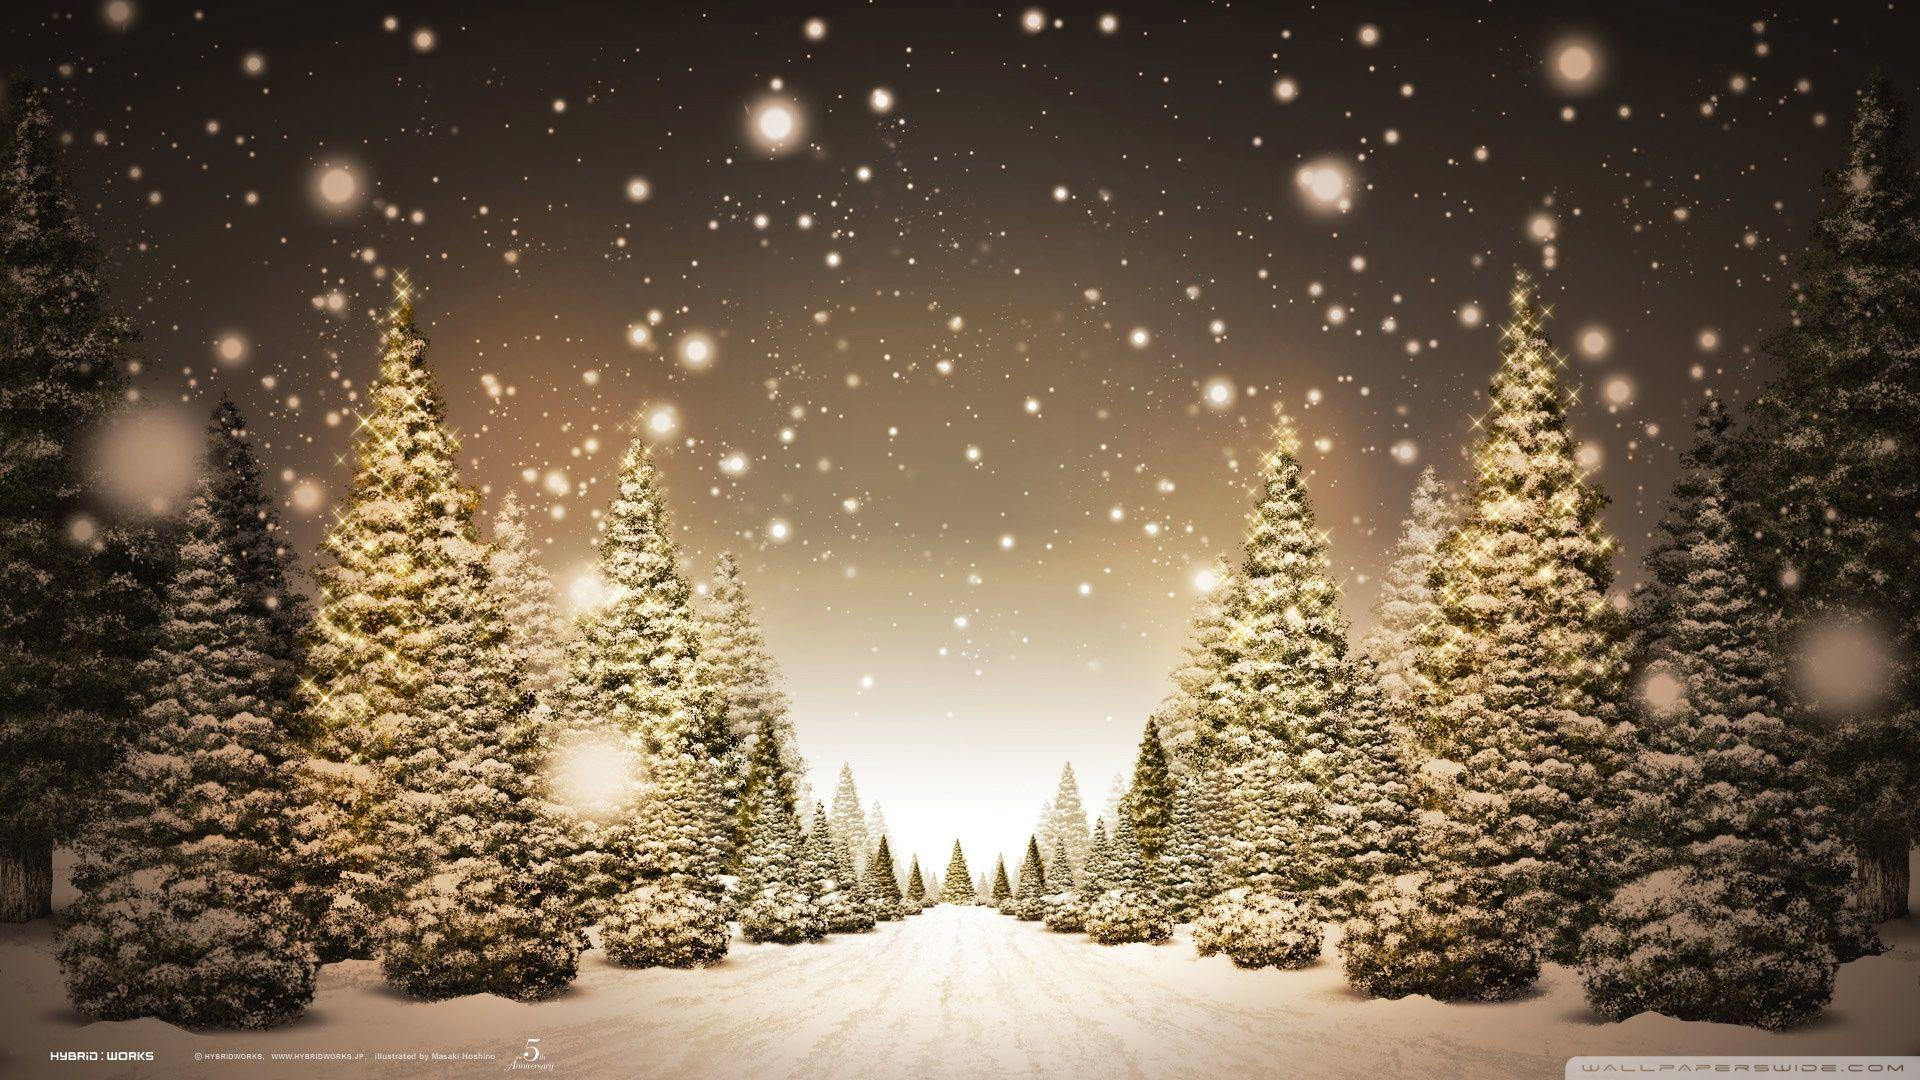 Wallpapers For > Christian Christmas Wallpapers 1920x1080